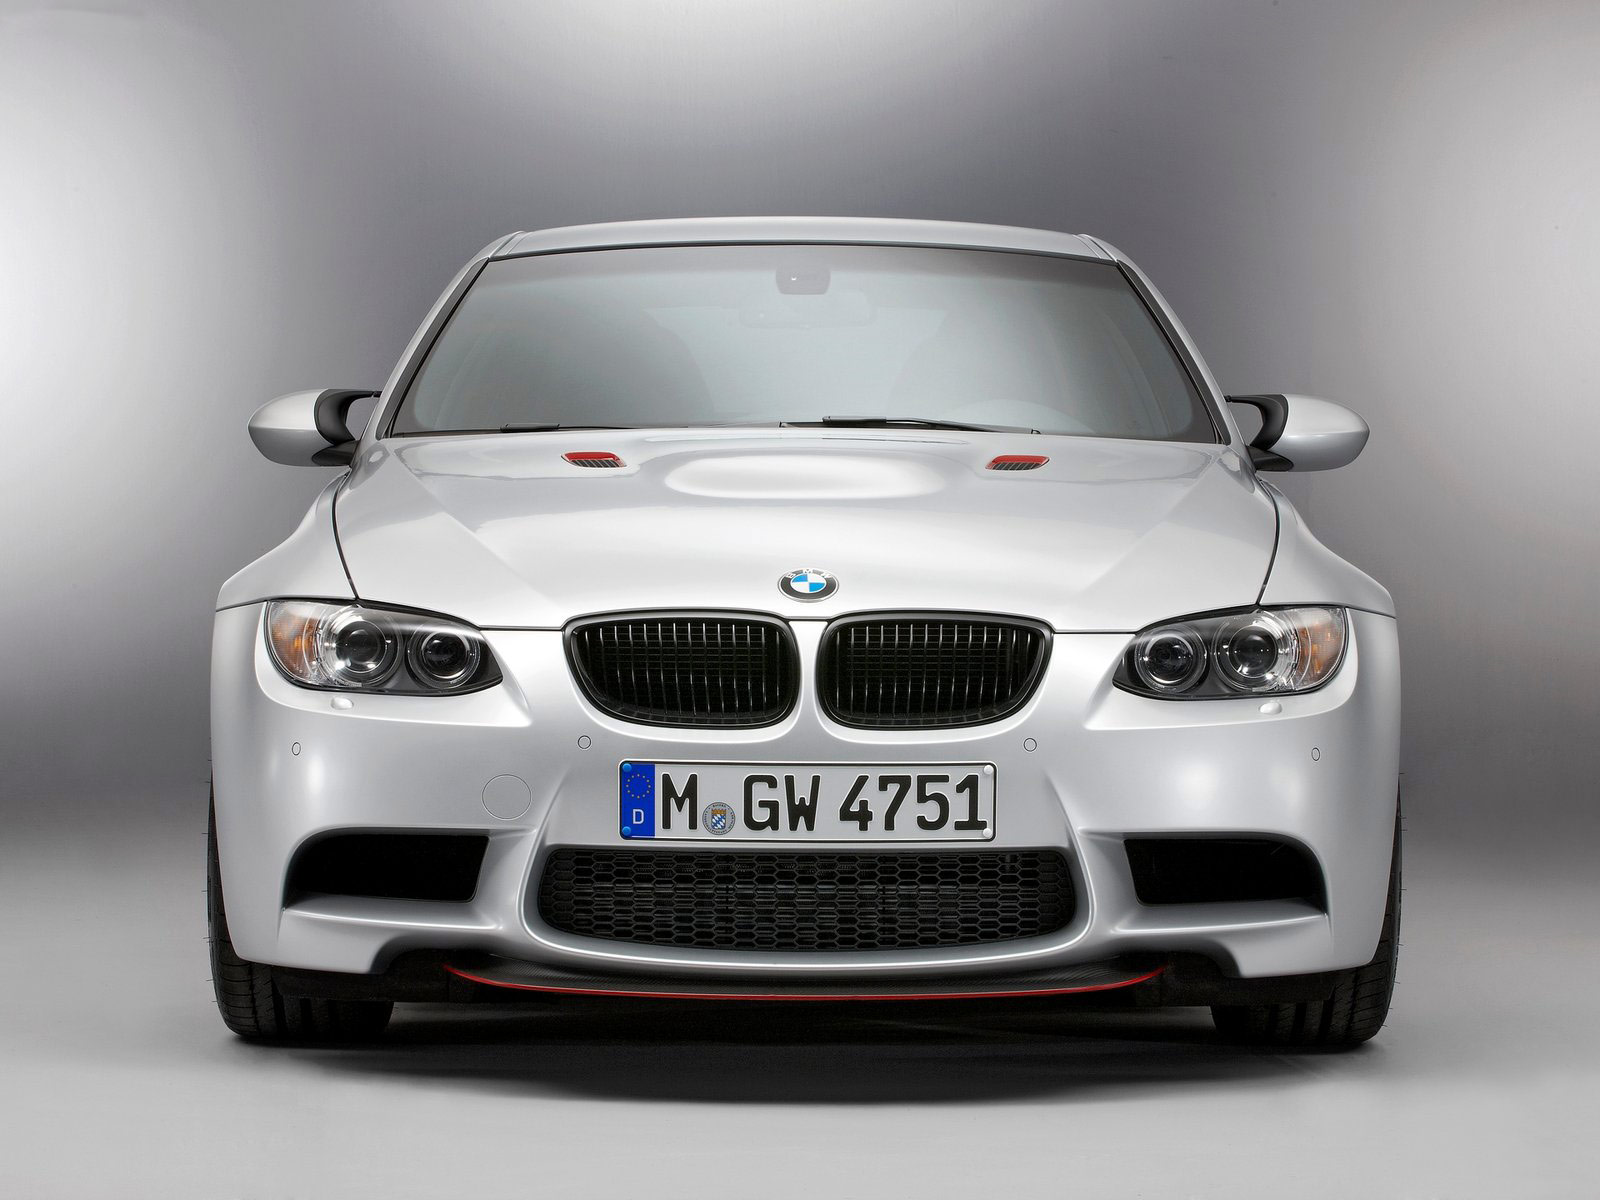 images of how to change desktop wallpaper windows 7 starter bmw m3 crt 2012 wallpaper